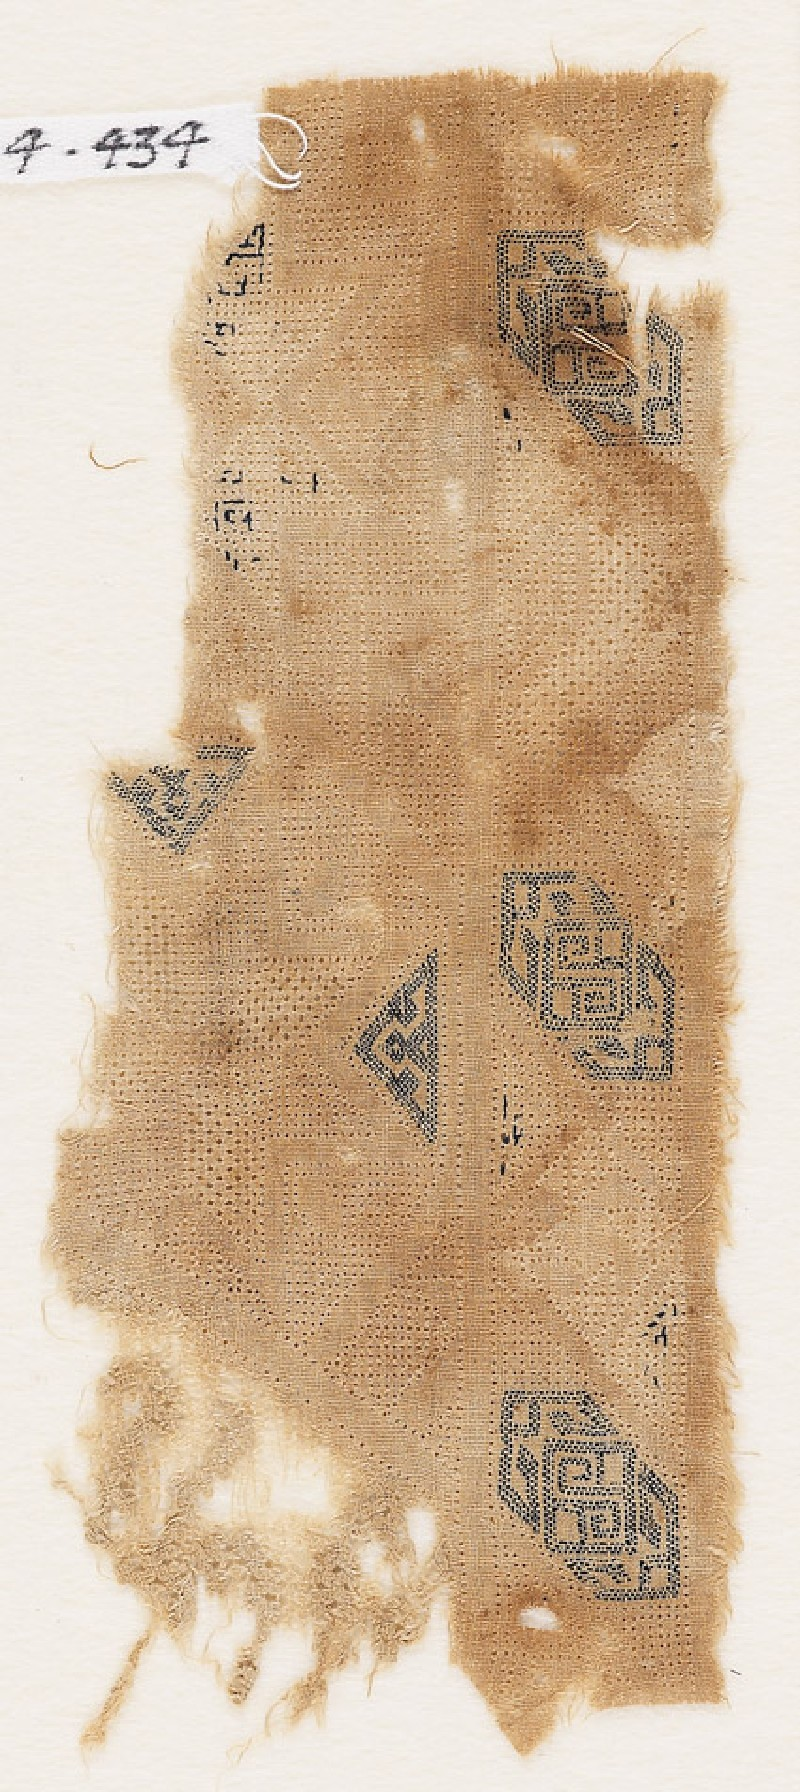 Textile fragment with three cartouches